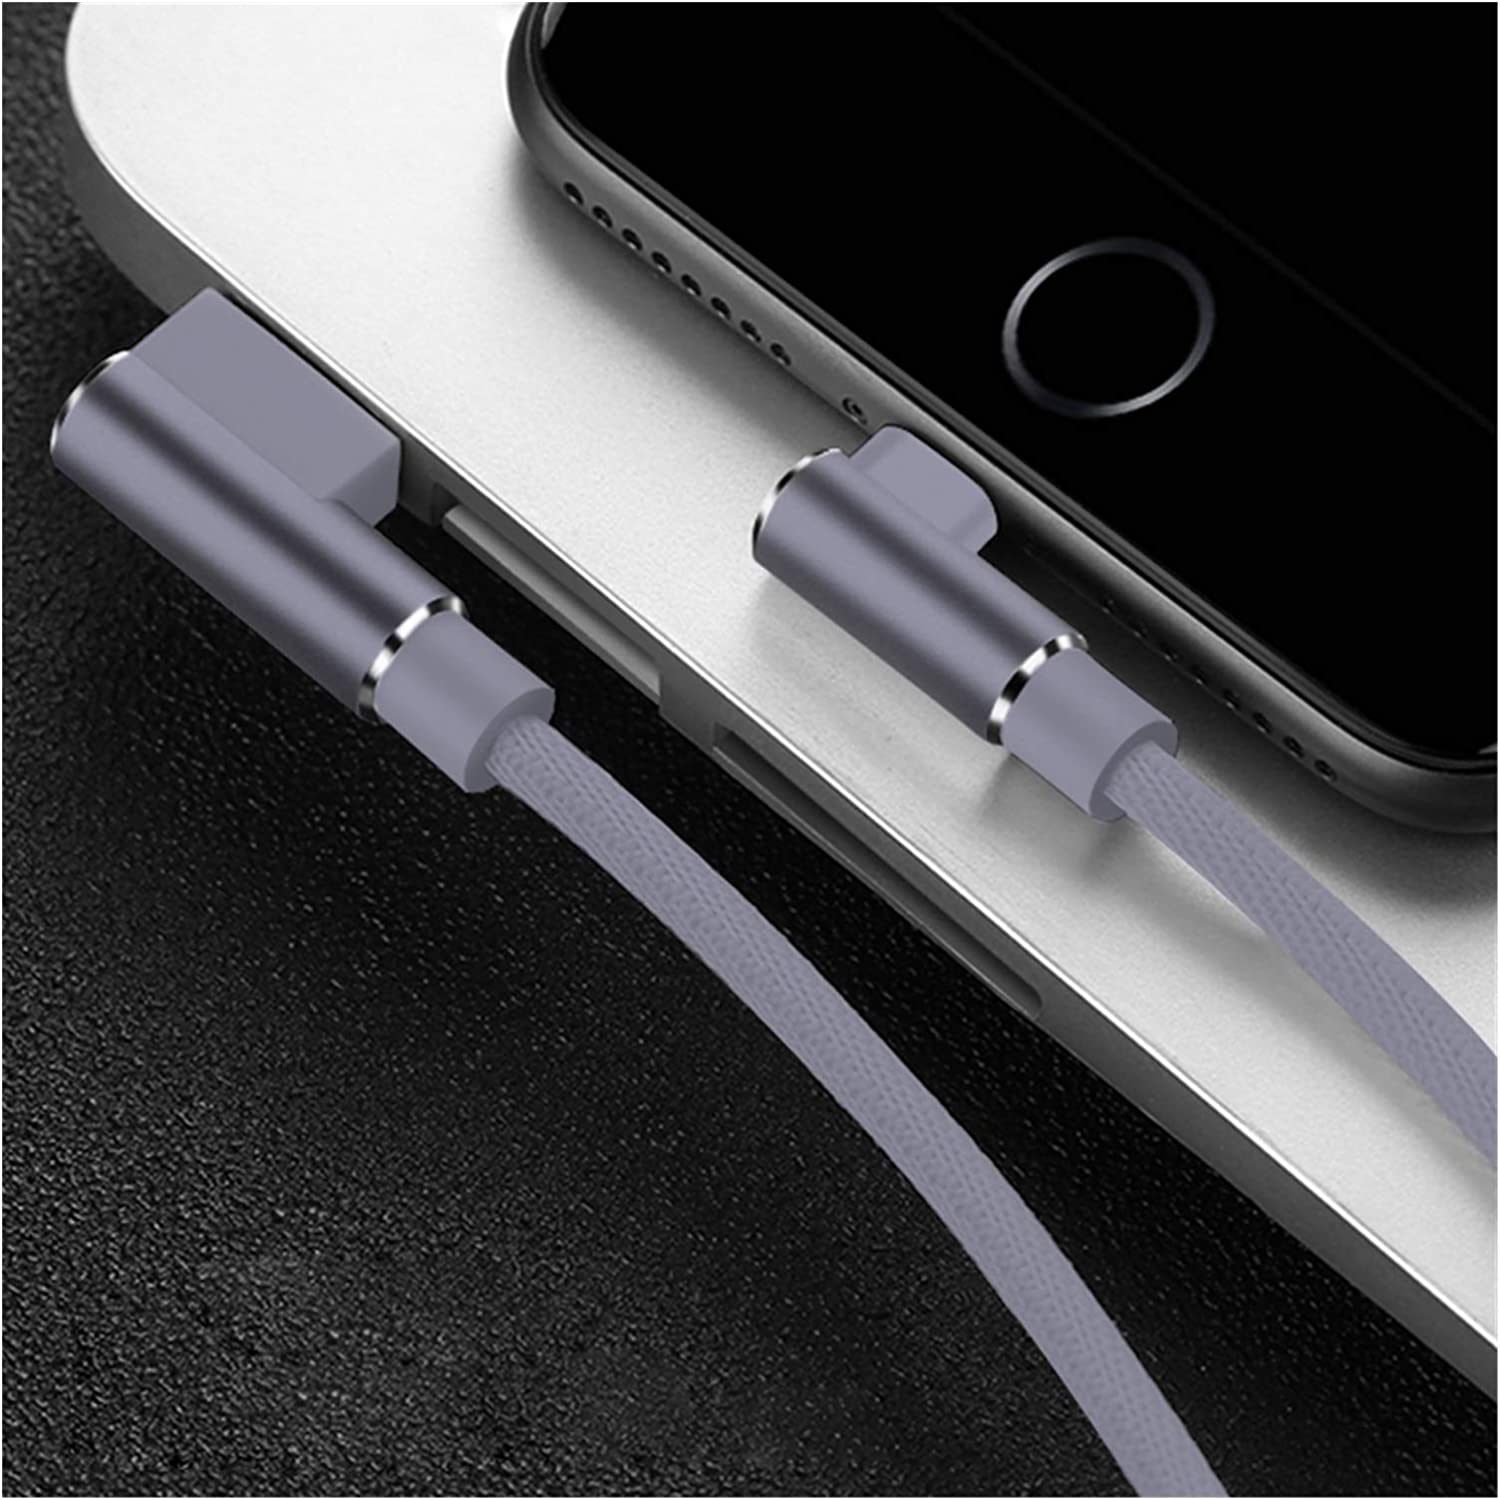 GBHD USB Extension Cable 1 2 3m 90 Degree Fast Charging Data Type C Micro USB C Cable for Samsung Huawei Xiaomi Type-c Charger Long Mobile Phone Cable Cell Phone Cables